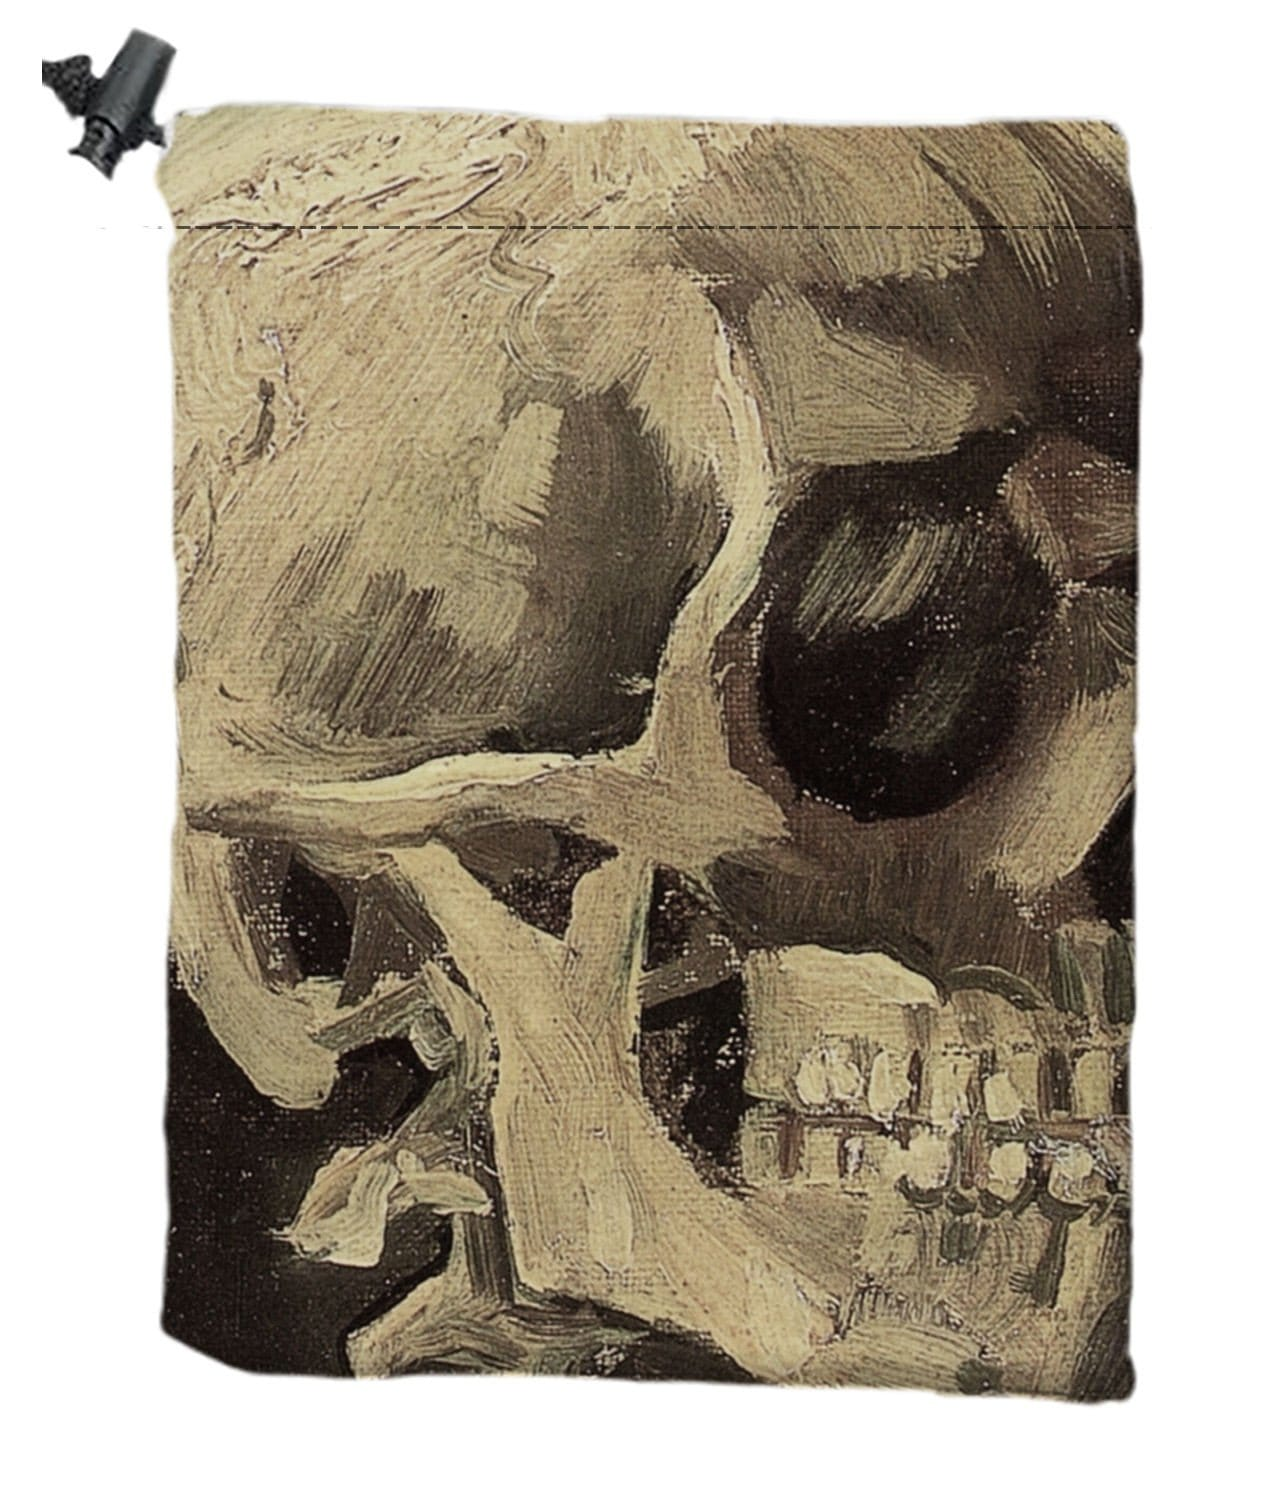 Zombie Dice Bag by Vincent van Gogh - Dice Bag - Original Magic Art - Accessories for Magic the Gathering and other card games